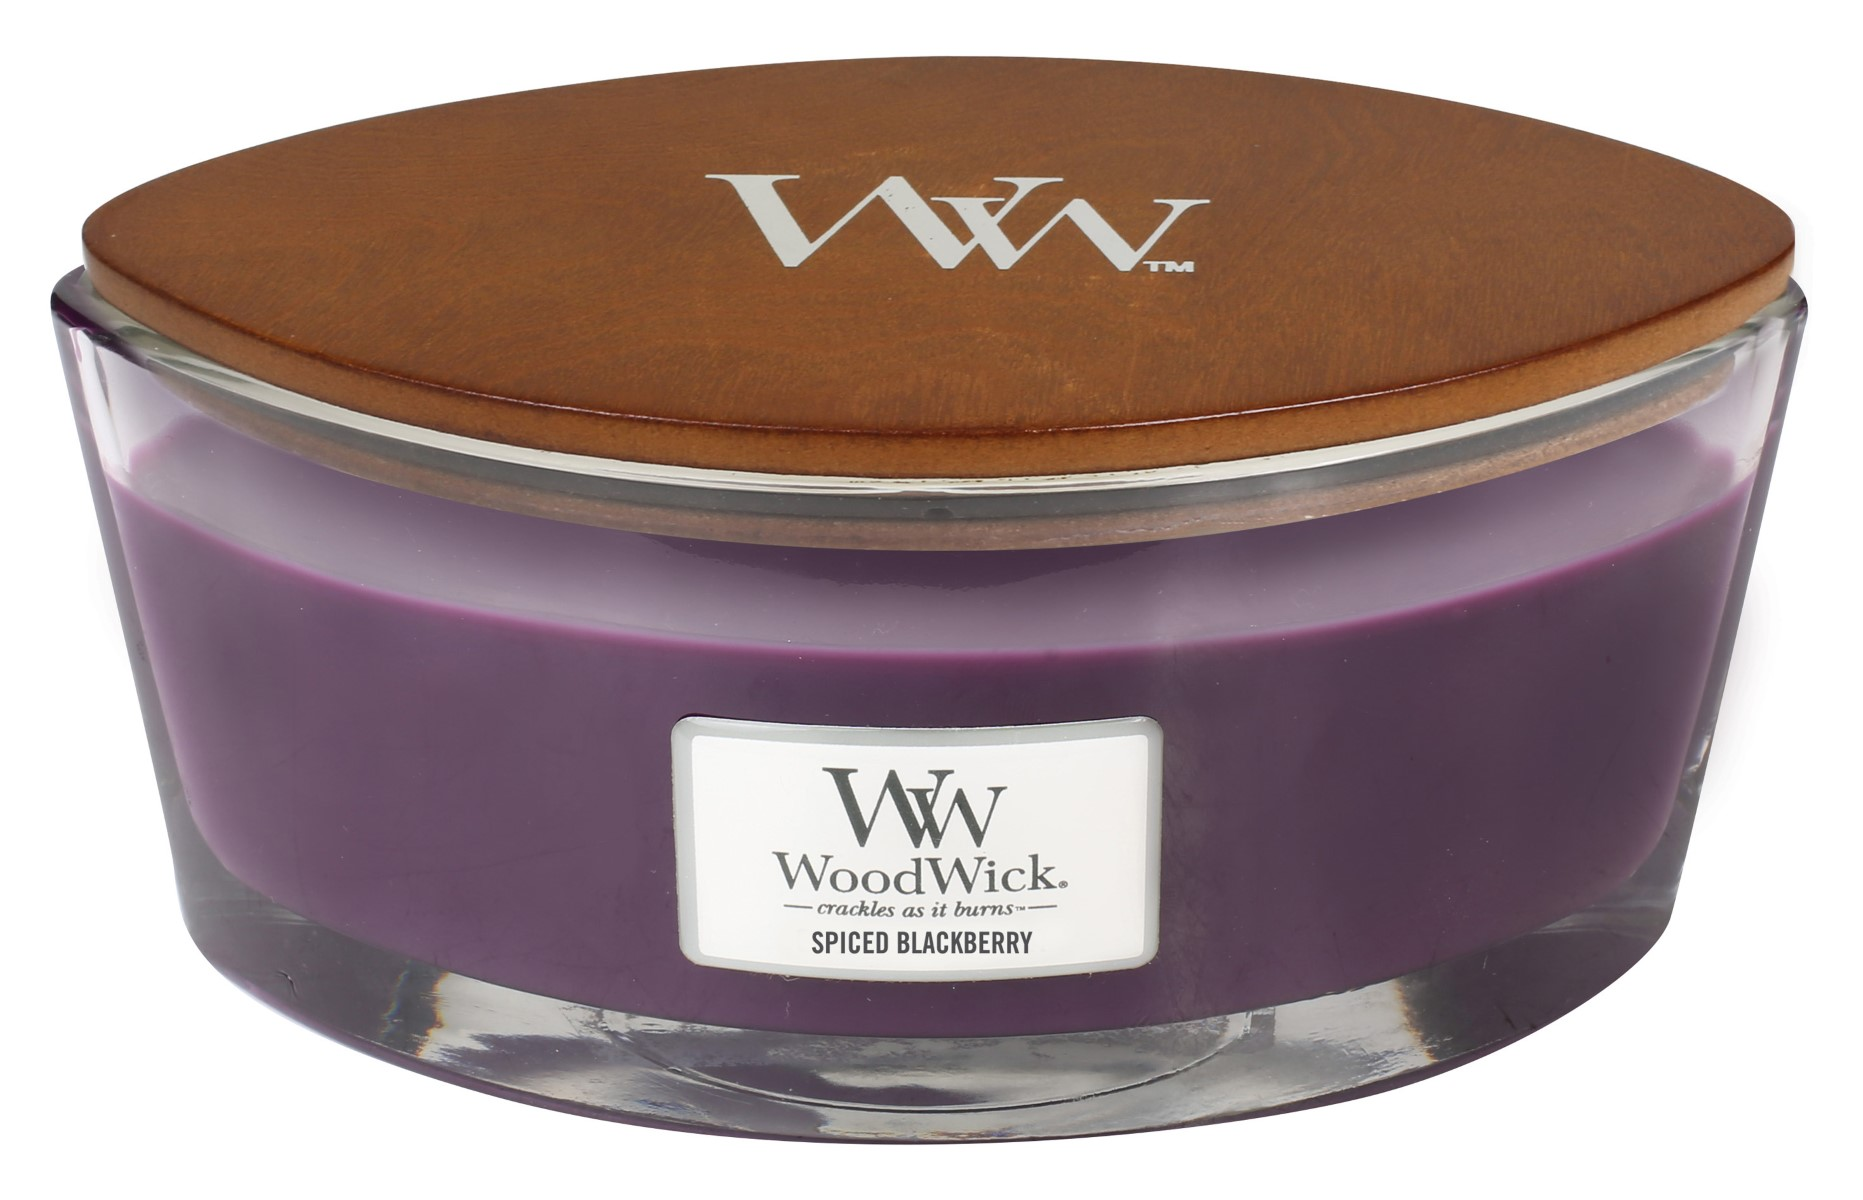 WoodWick vonná svíčka Spiced Blackberry loď